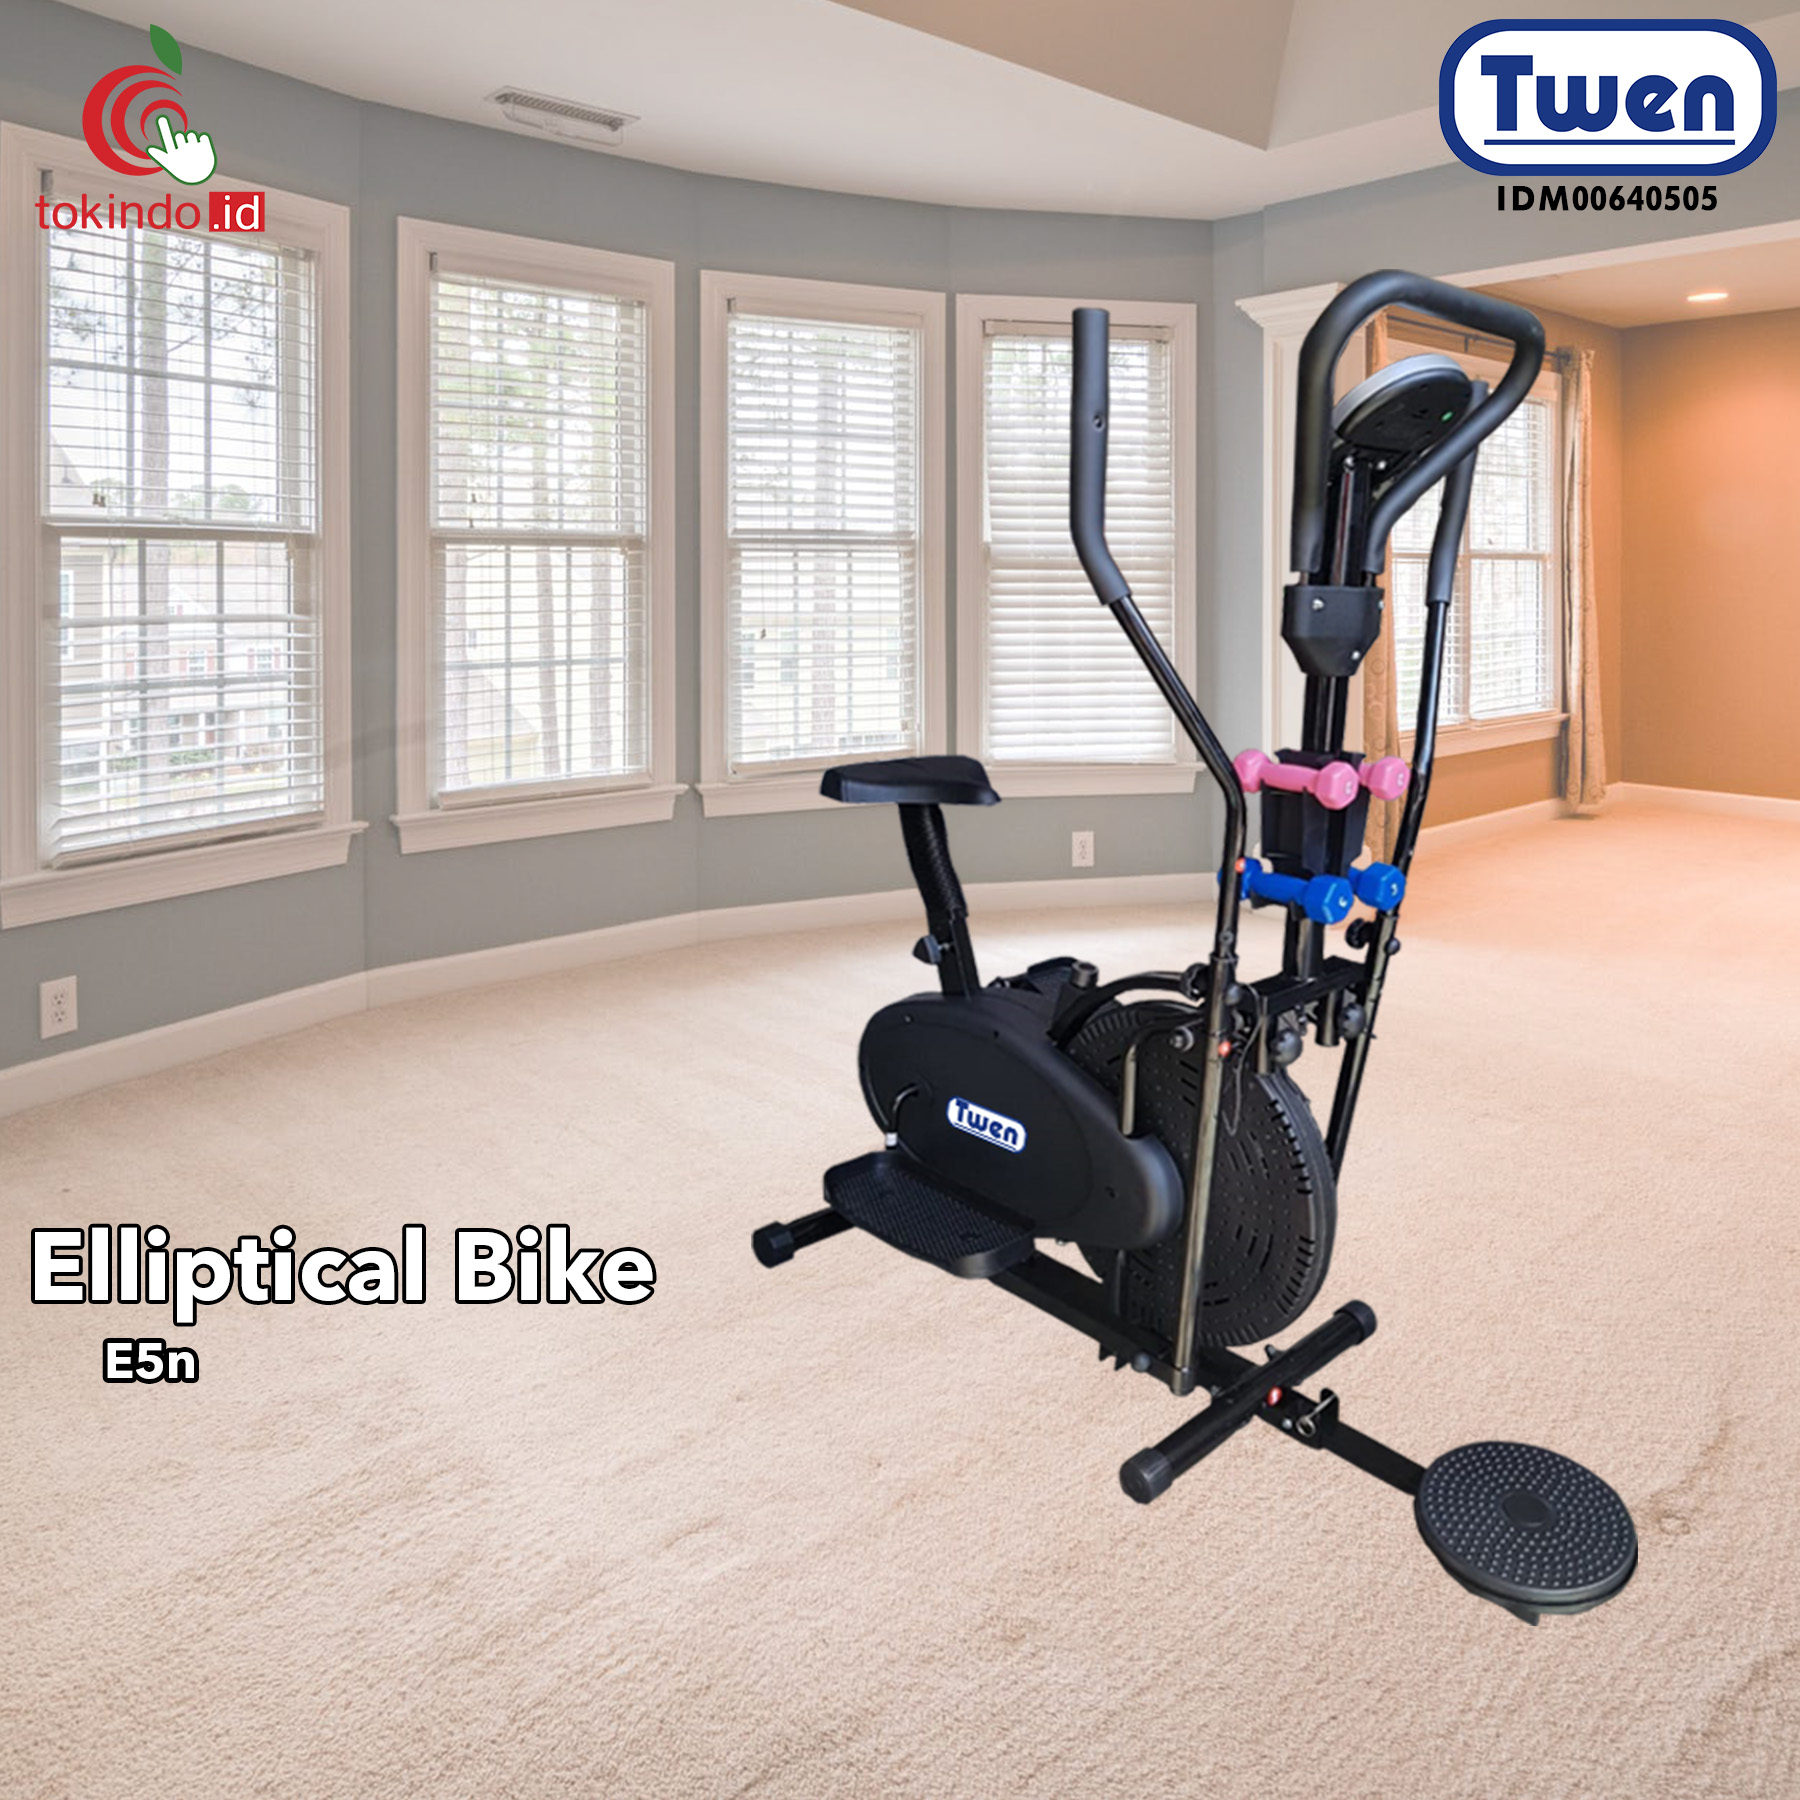 Twen Elliptical Bike E5N